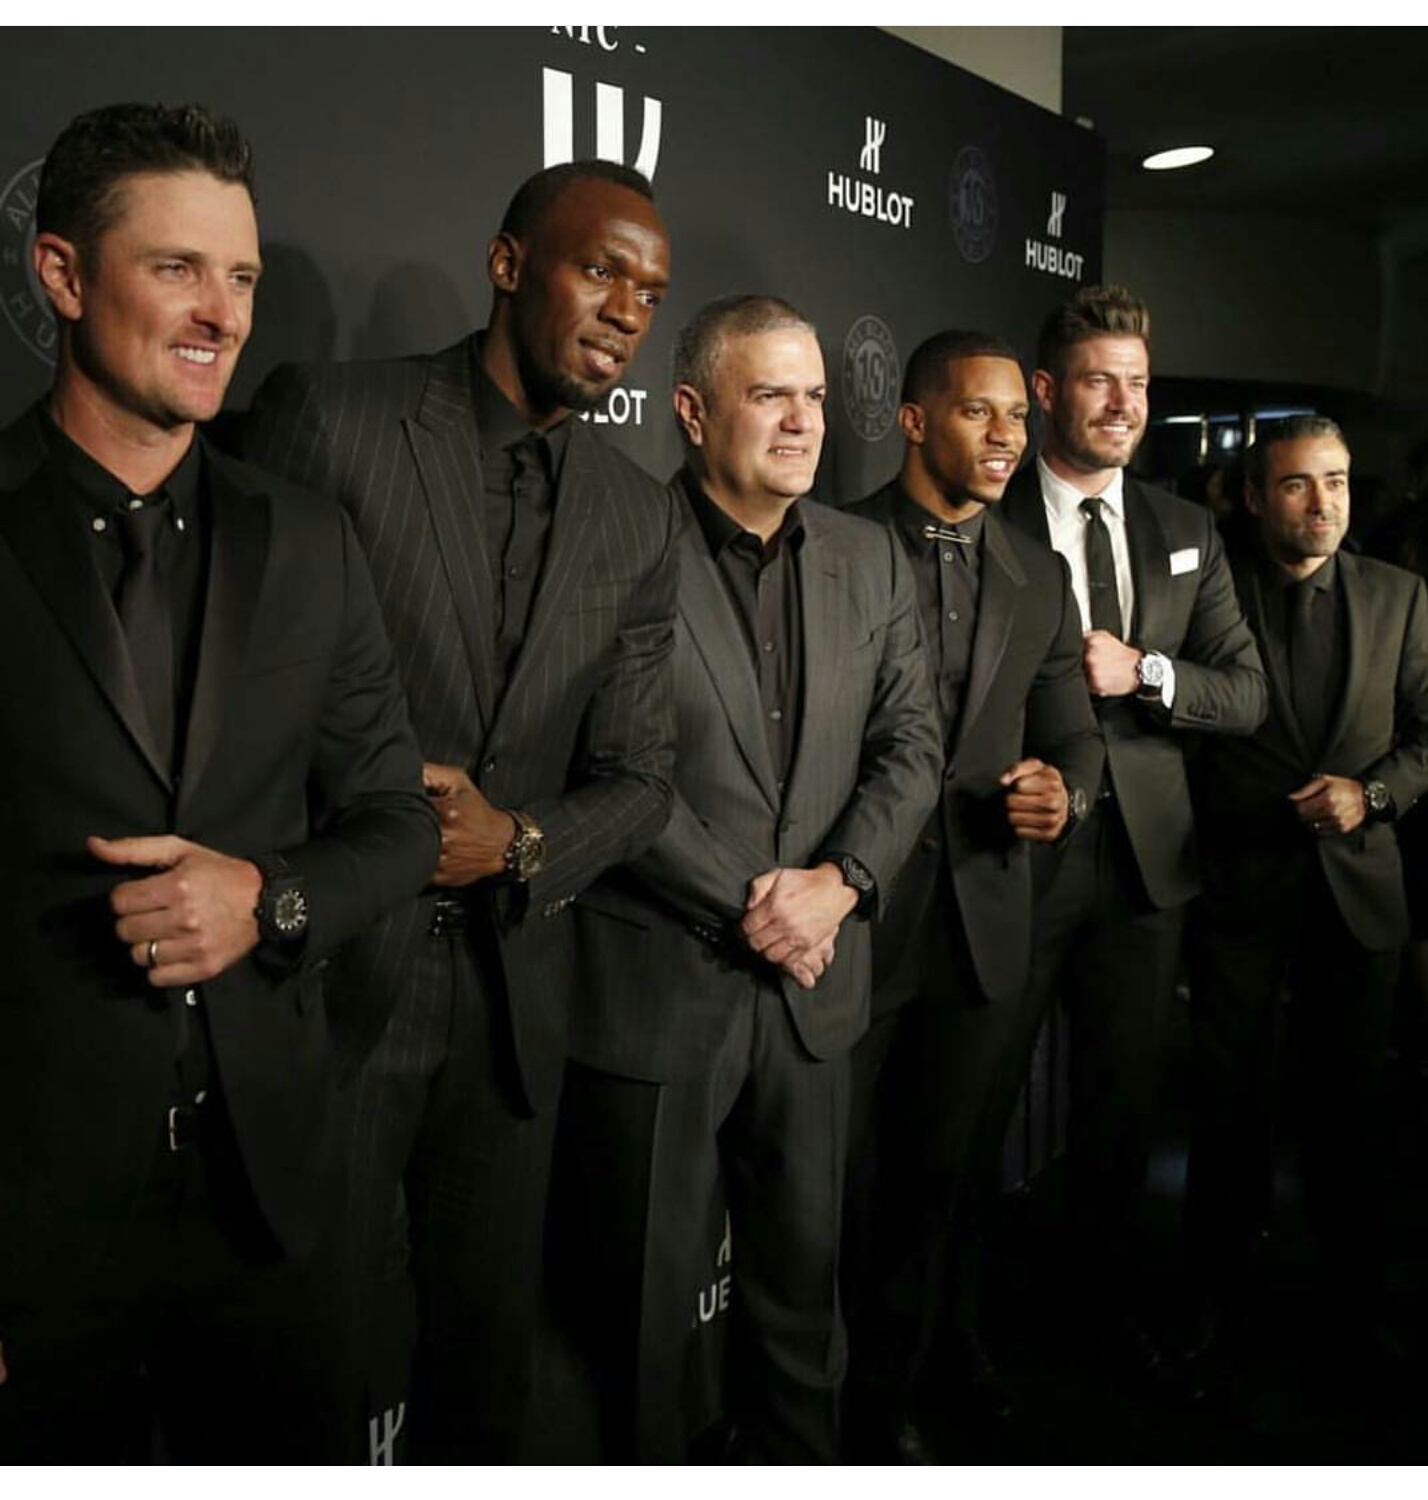 Victor Cruz, Usain Bolt Helps Hublot Celebrate New NYC Fifth Avenue Store and 10 Year Anniversary of All Black Collection